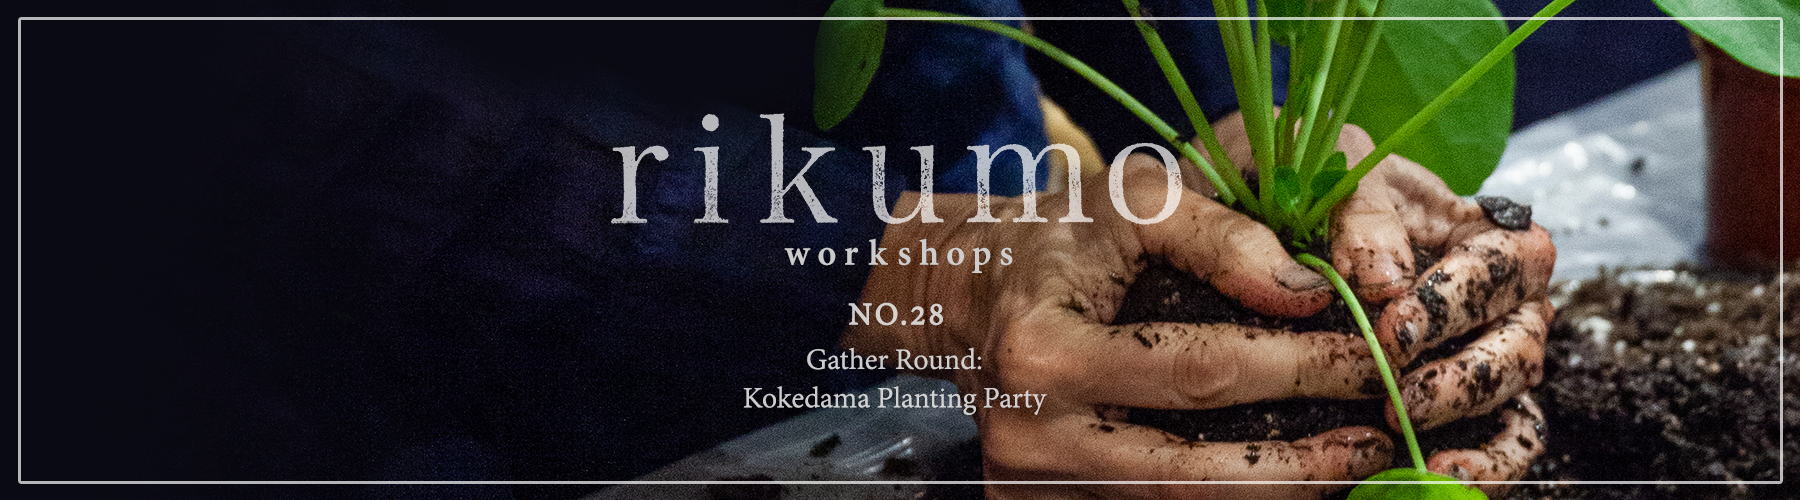 workshop banner.jpg